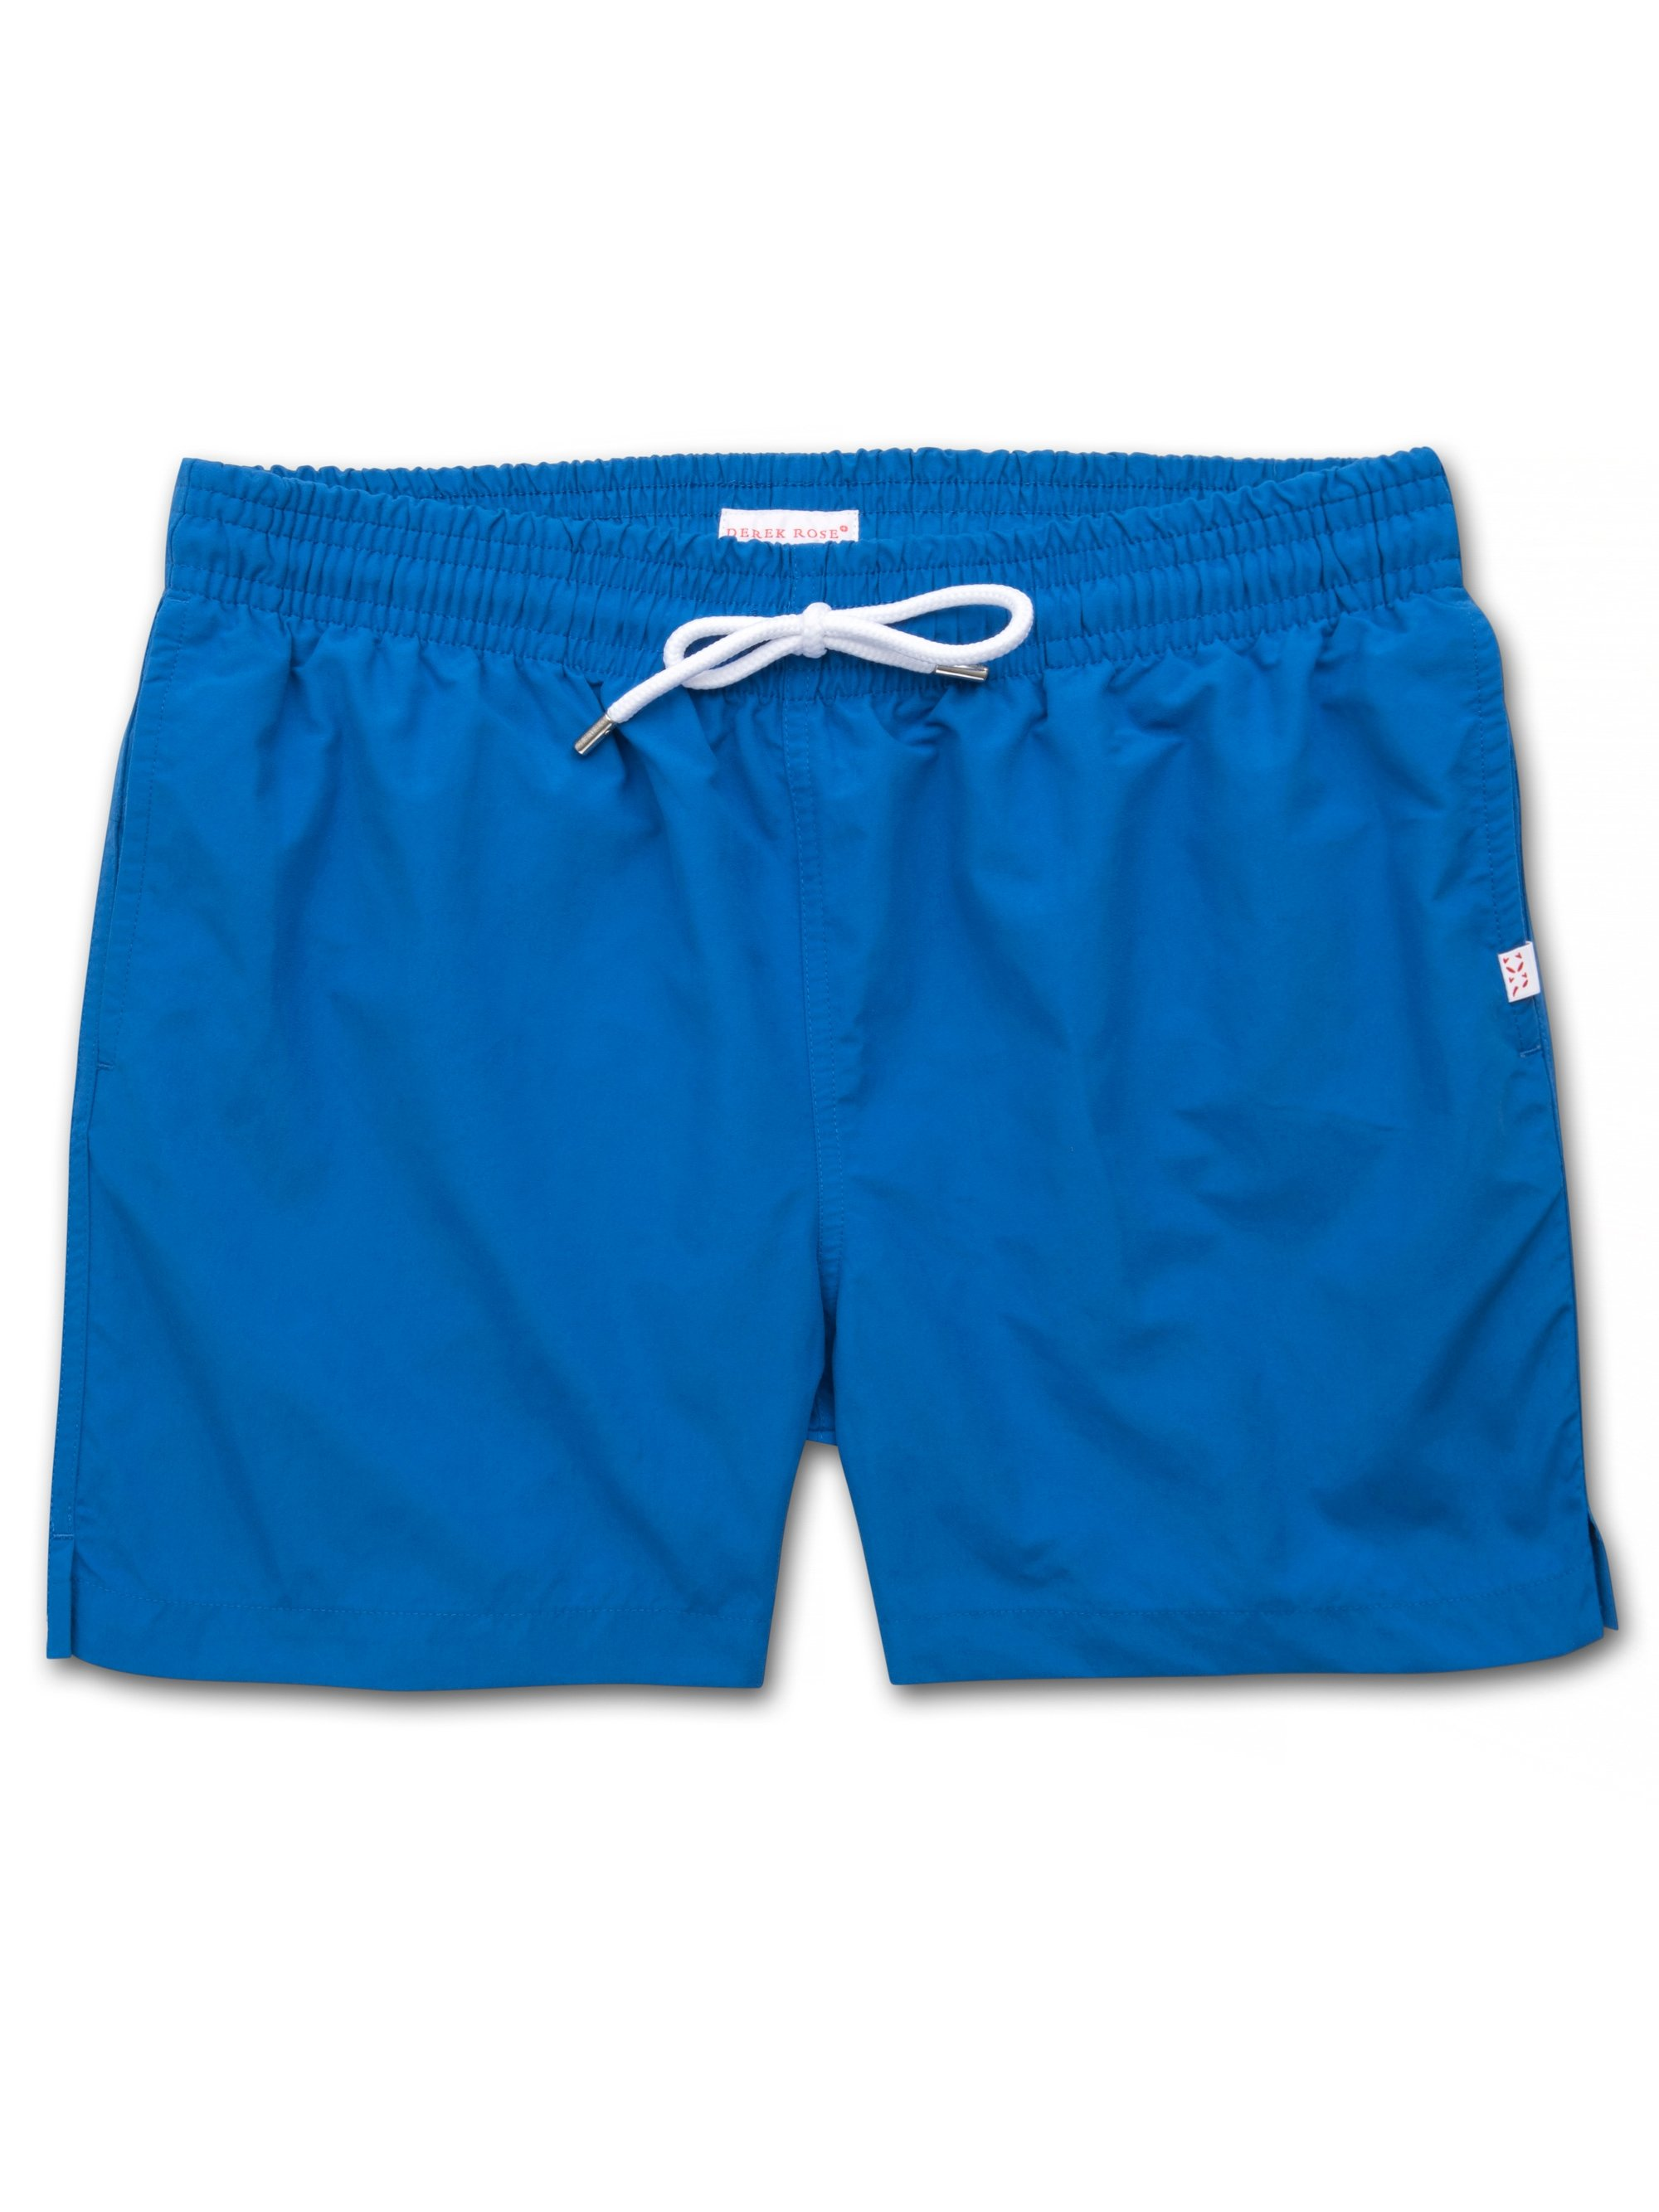 Men's Short Classic Fit Swim Shorts Aruba Blue